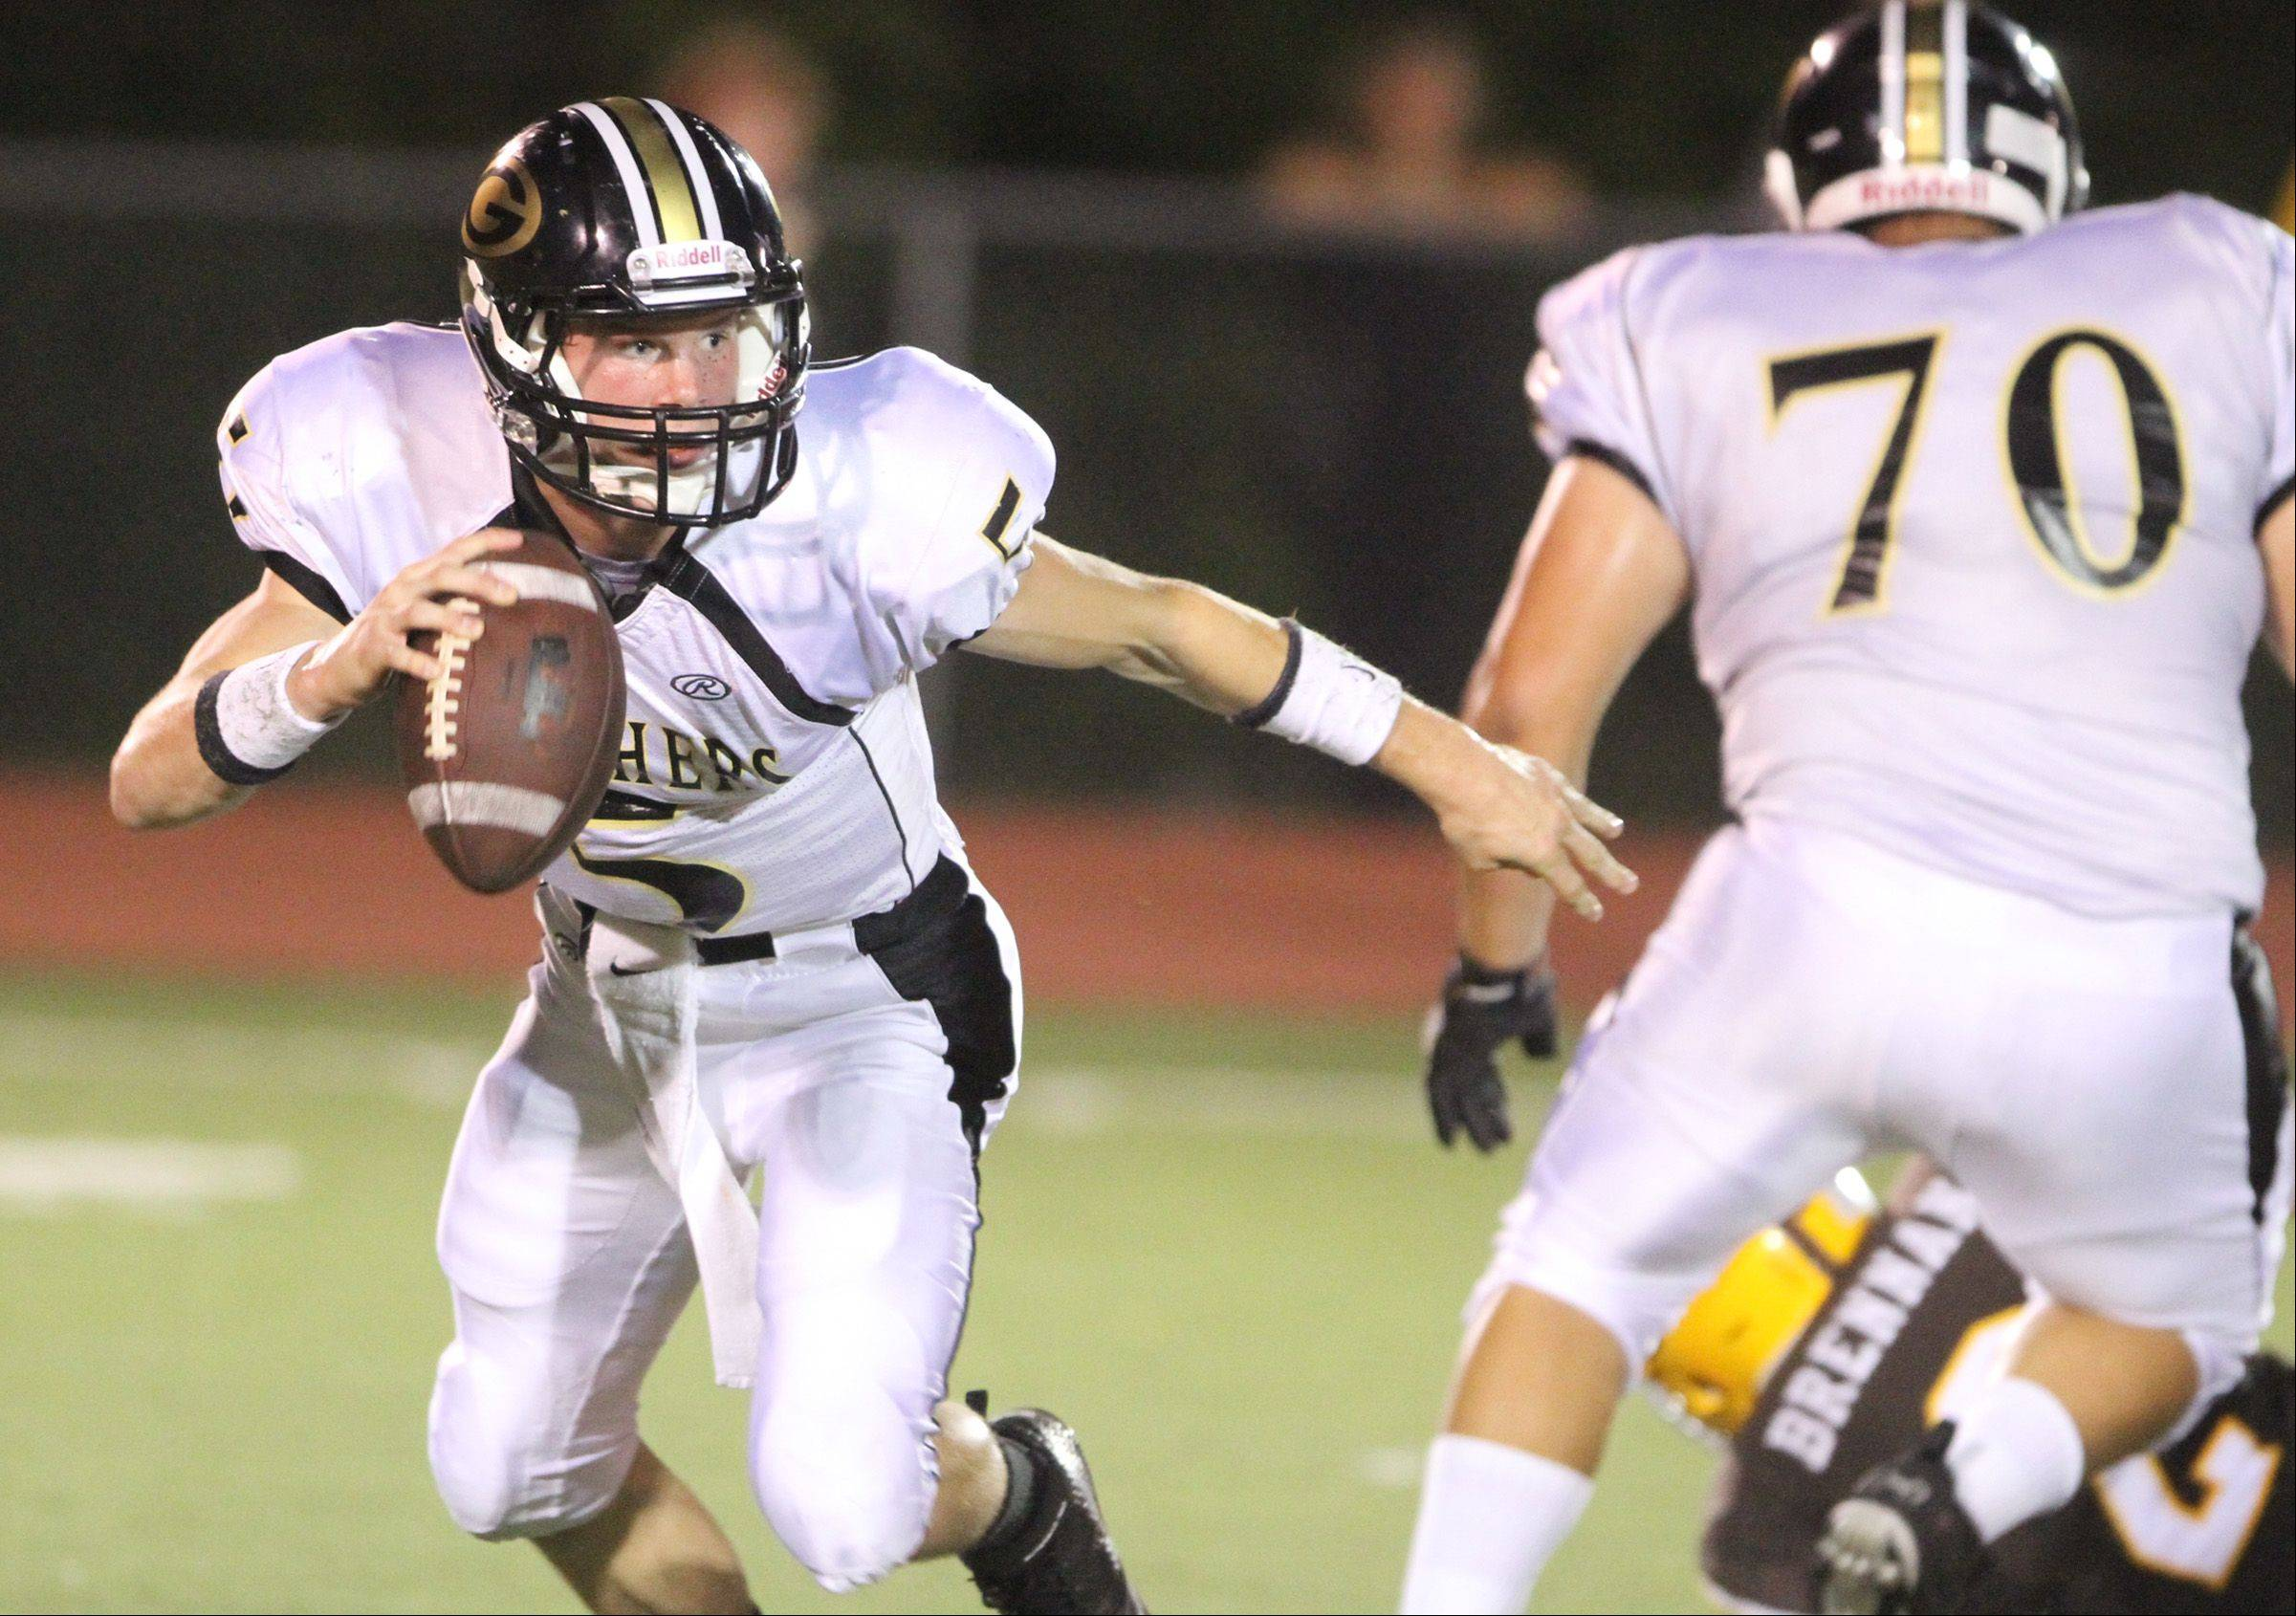 Glenbard North quarterback Brian Murphy scrambles with the ball against Carmel defenders on Friday in Mundelein.